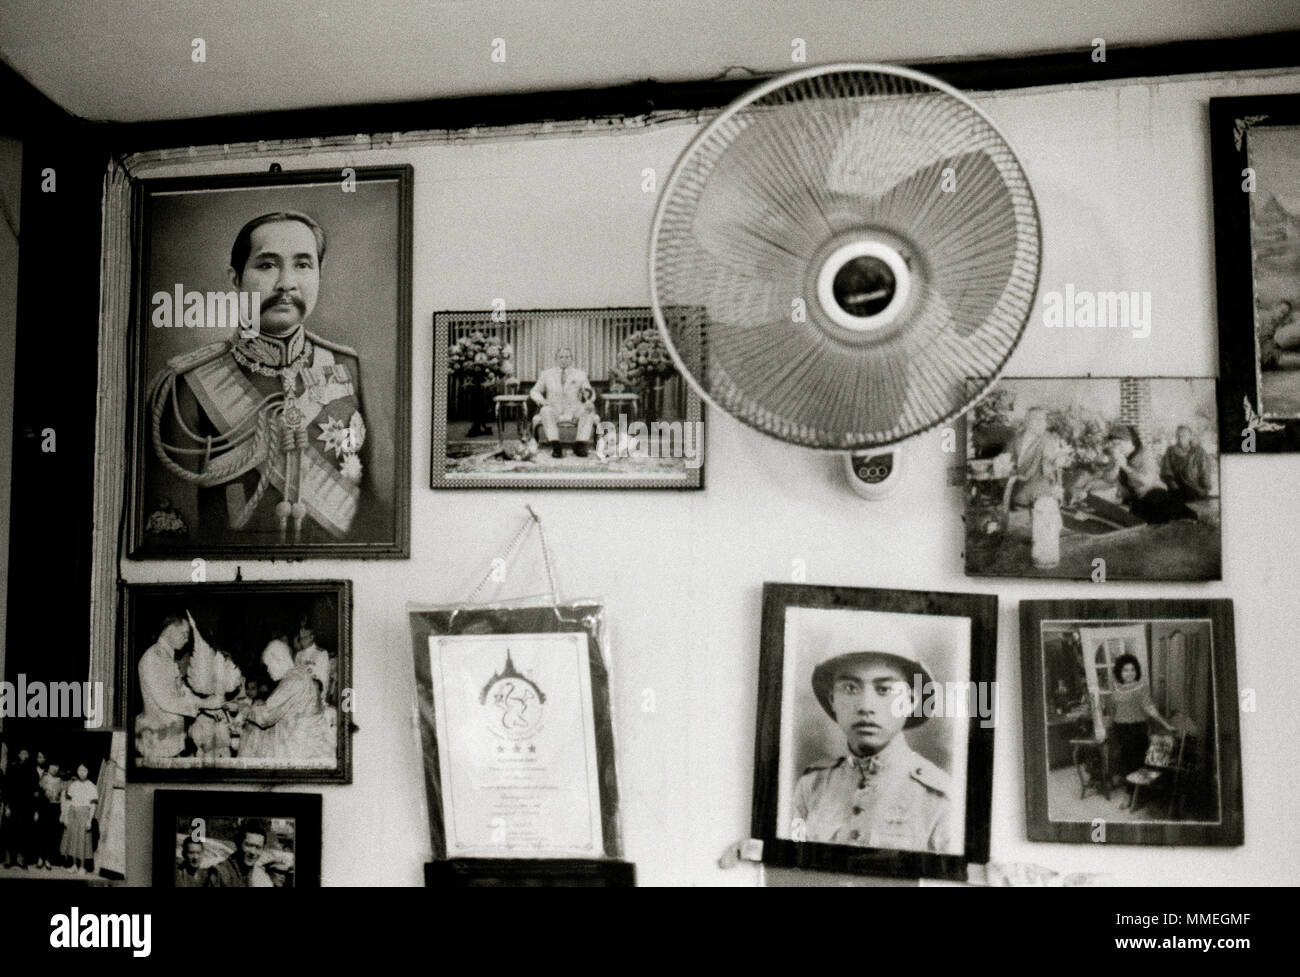 Nostalgia in Bangkok in Thailand in Southeast Asia Far East. Thai History Travel - Stock Image